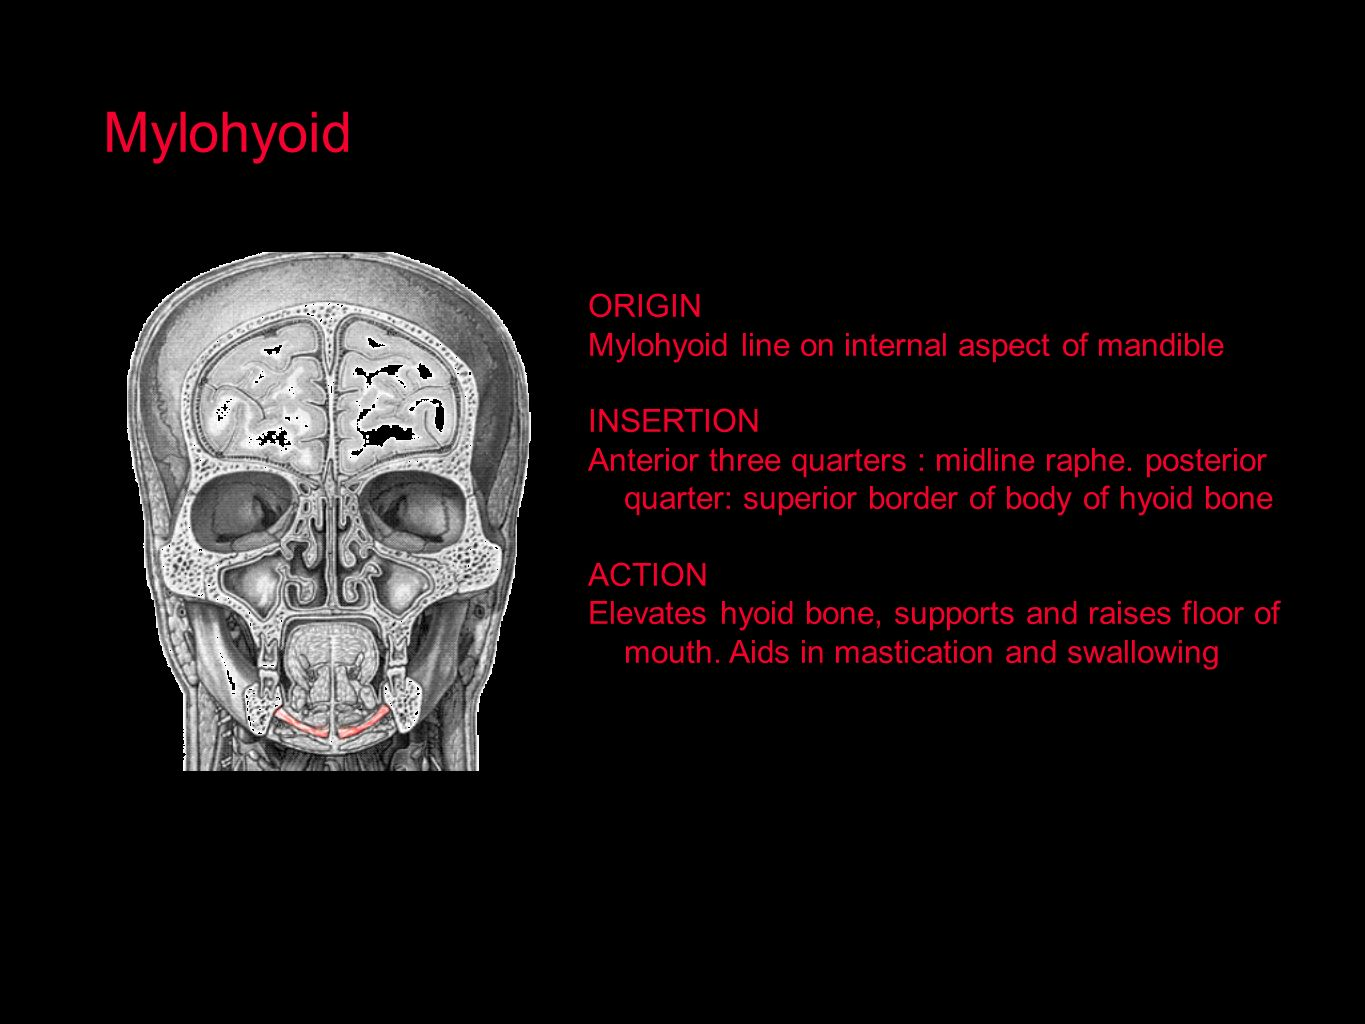 Mylohyoid ORIGIN Mylohyoid line on internal aspect of mandible